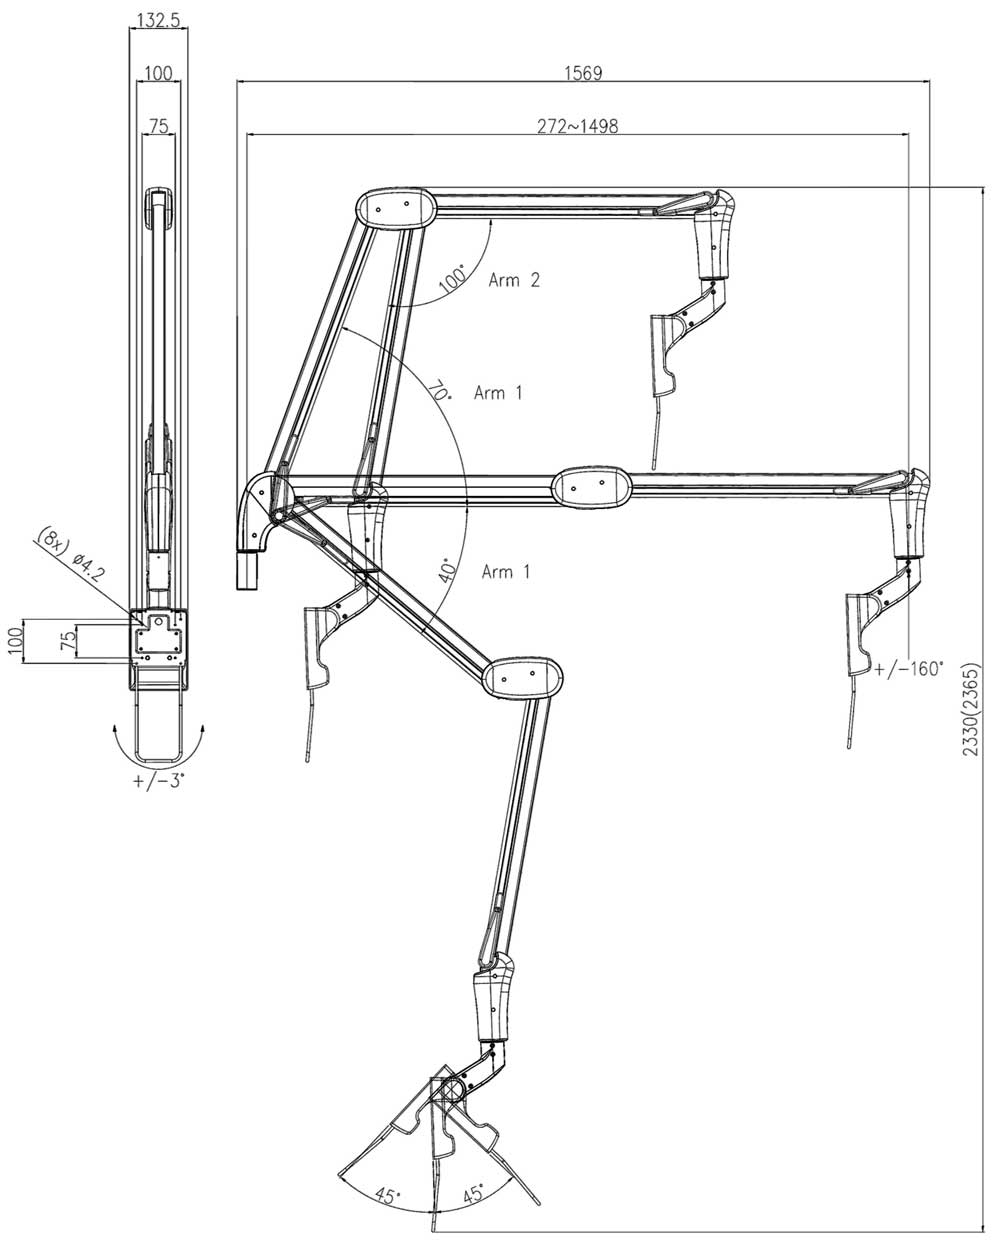 FX300 Technical Drawing